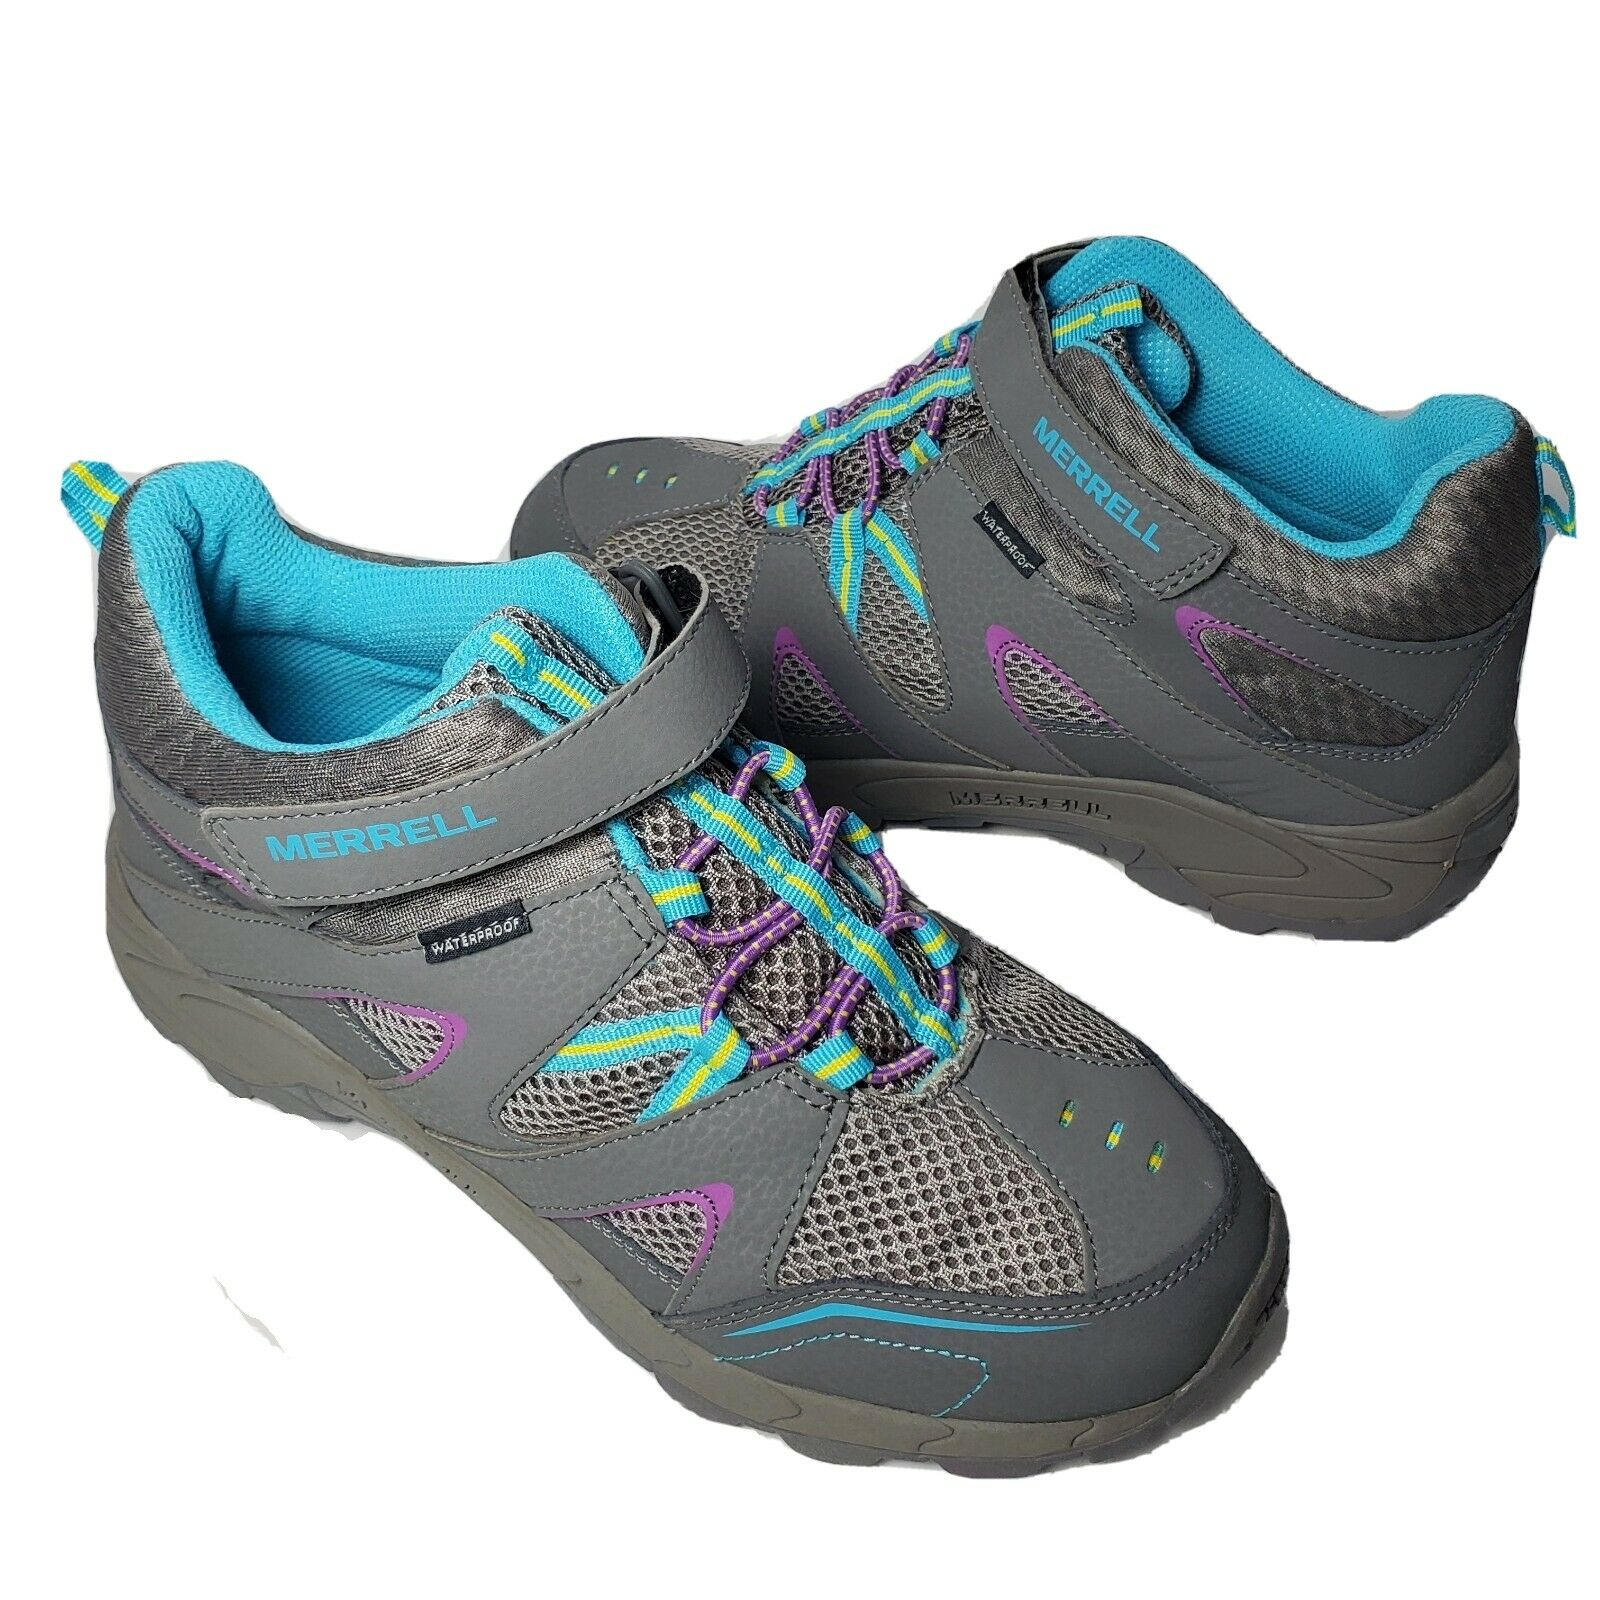 Merrell Hilltop Mid Quick-CL Hiking Trail Shoes Womens Youth Girls 6.5 37.5